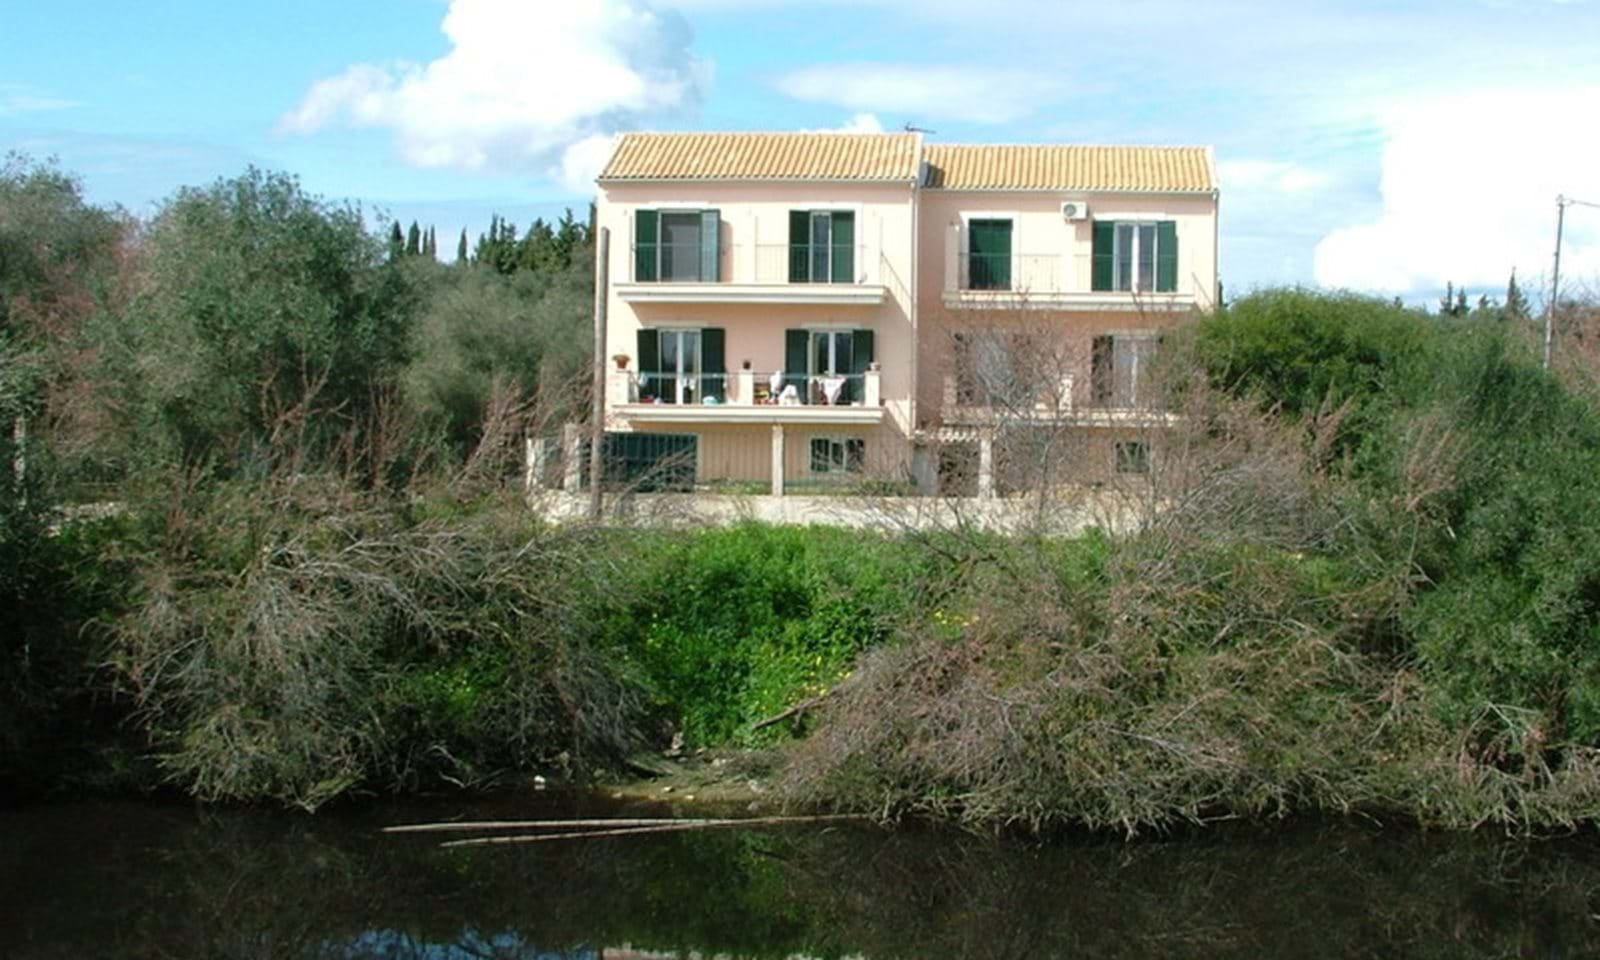 south corfu property for sale, property for sale in south corfu